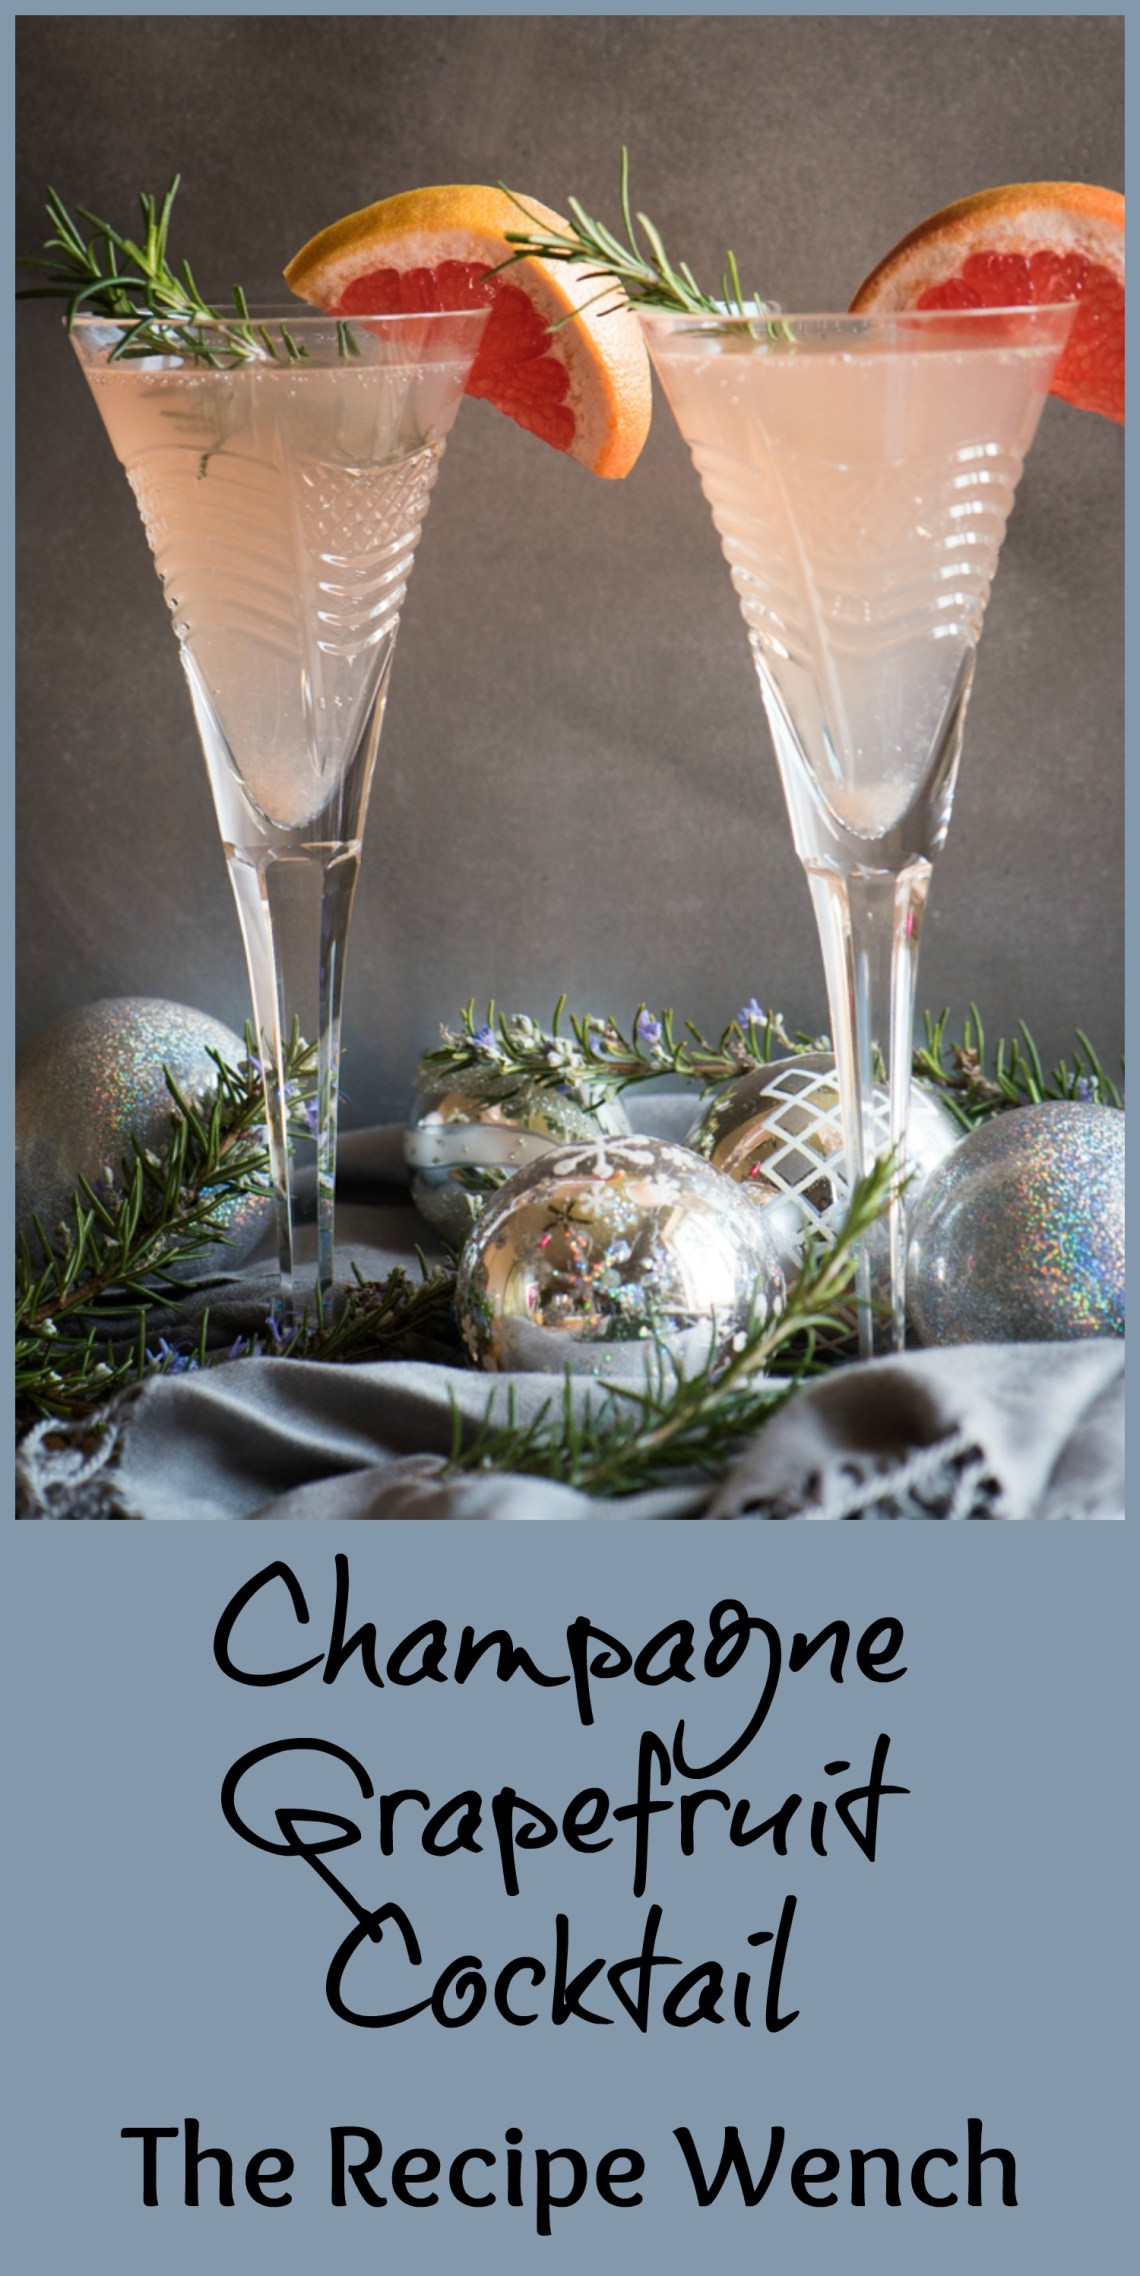 Champagne Grapefruit Cocktail - Just 4 ingredients in this palate-pleasing beverage! | The Recipe Wench